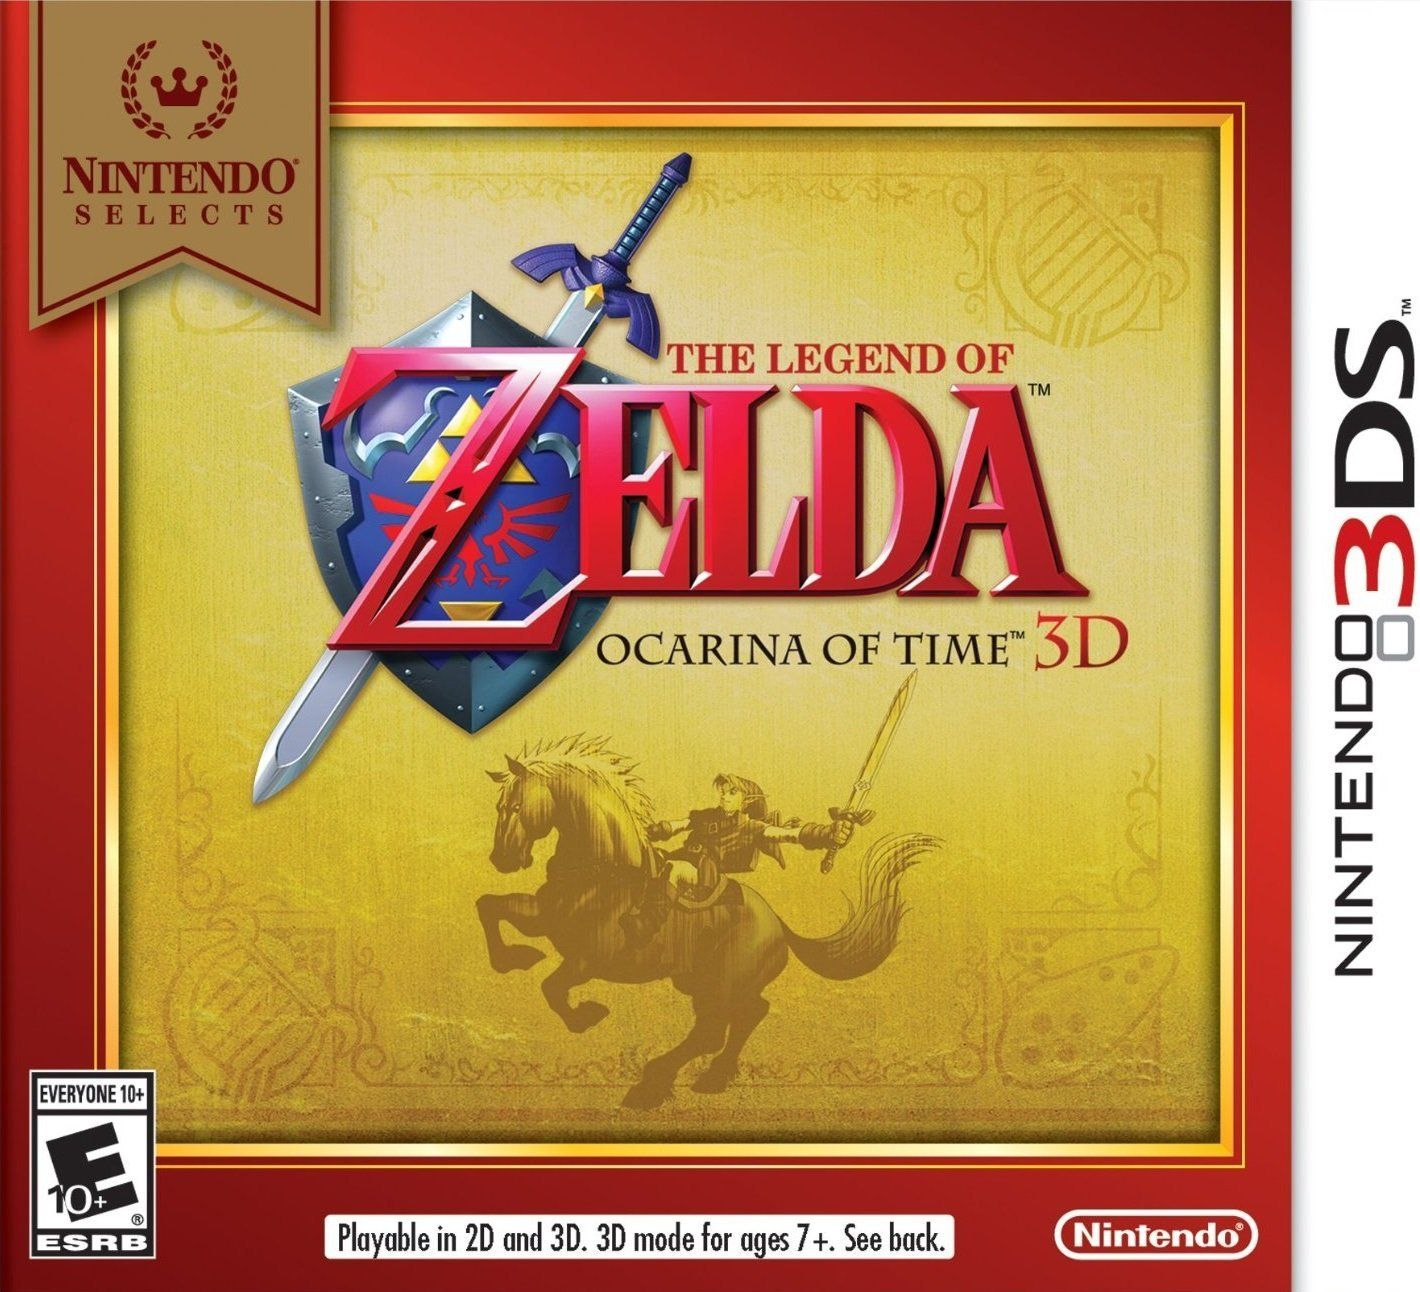 Nintendo Selects The Legend of Zelda Ocarina of Time 3D